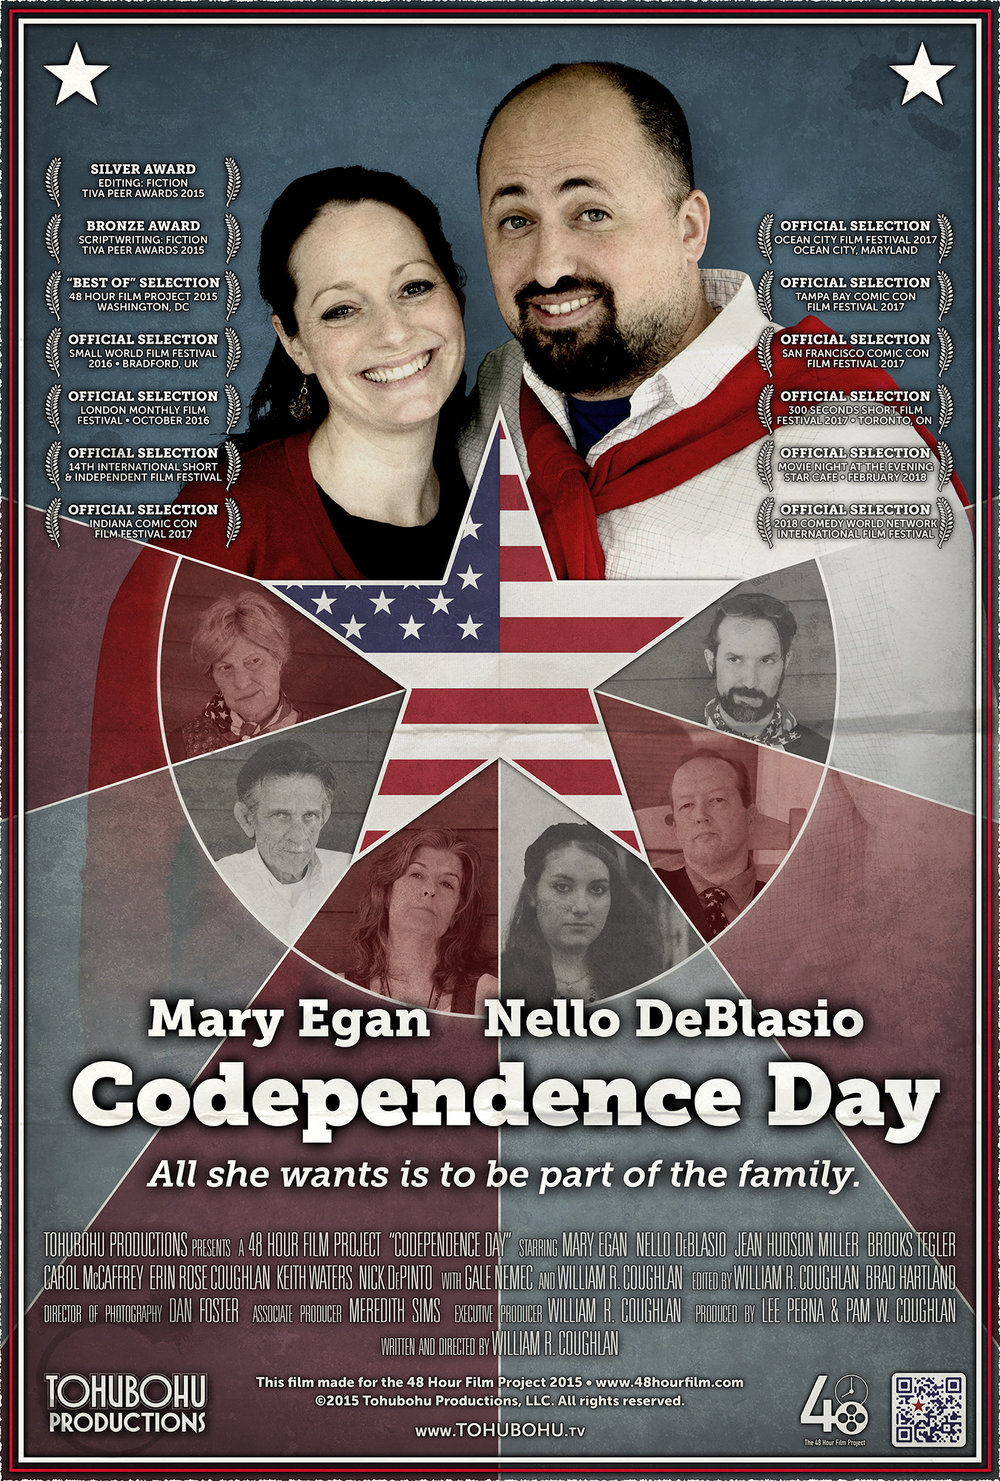 "Codependence Day - 2015 · 5:00 · produced by Lee Perna & Pam W. Coughlan · Written and directed by William R. CoughlanEmily is nervous about meeting her husband Wilson's family for the first time at their annual Independence Day gathering. Having eloped, she is concerned that the family will never accept her as one of their own. But Wilson has a plan to bring her into the fold — competing in the family's annual (if ridiculous) tradition of throwing balls at a target object, a barely-recognizable variation of bocce.After producing only one short film each year in 2013 and 2014, Tohubohu returned to the 48 Hour Film Project with a vengeance in 2015 with ""Codependence Day"" — an offbeat interpretation of the traditional ""holiday film."" The film was created entirely between May 1st through the 3rd, 2015, and premiered at the AFI Silver Theatre on Friday, May 8th."